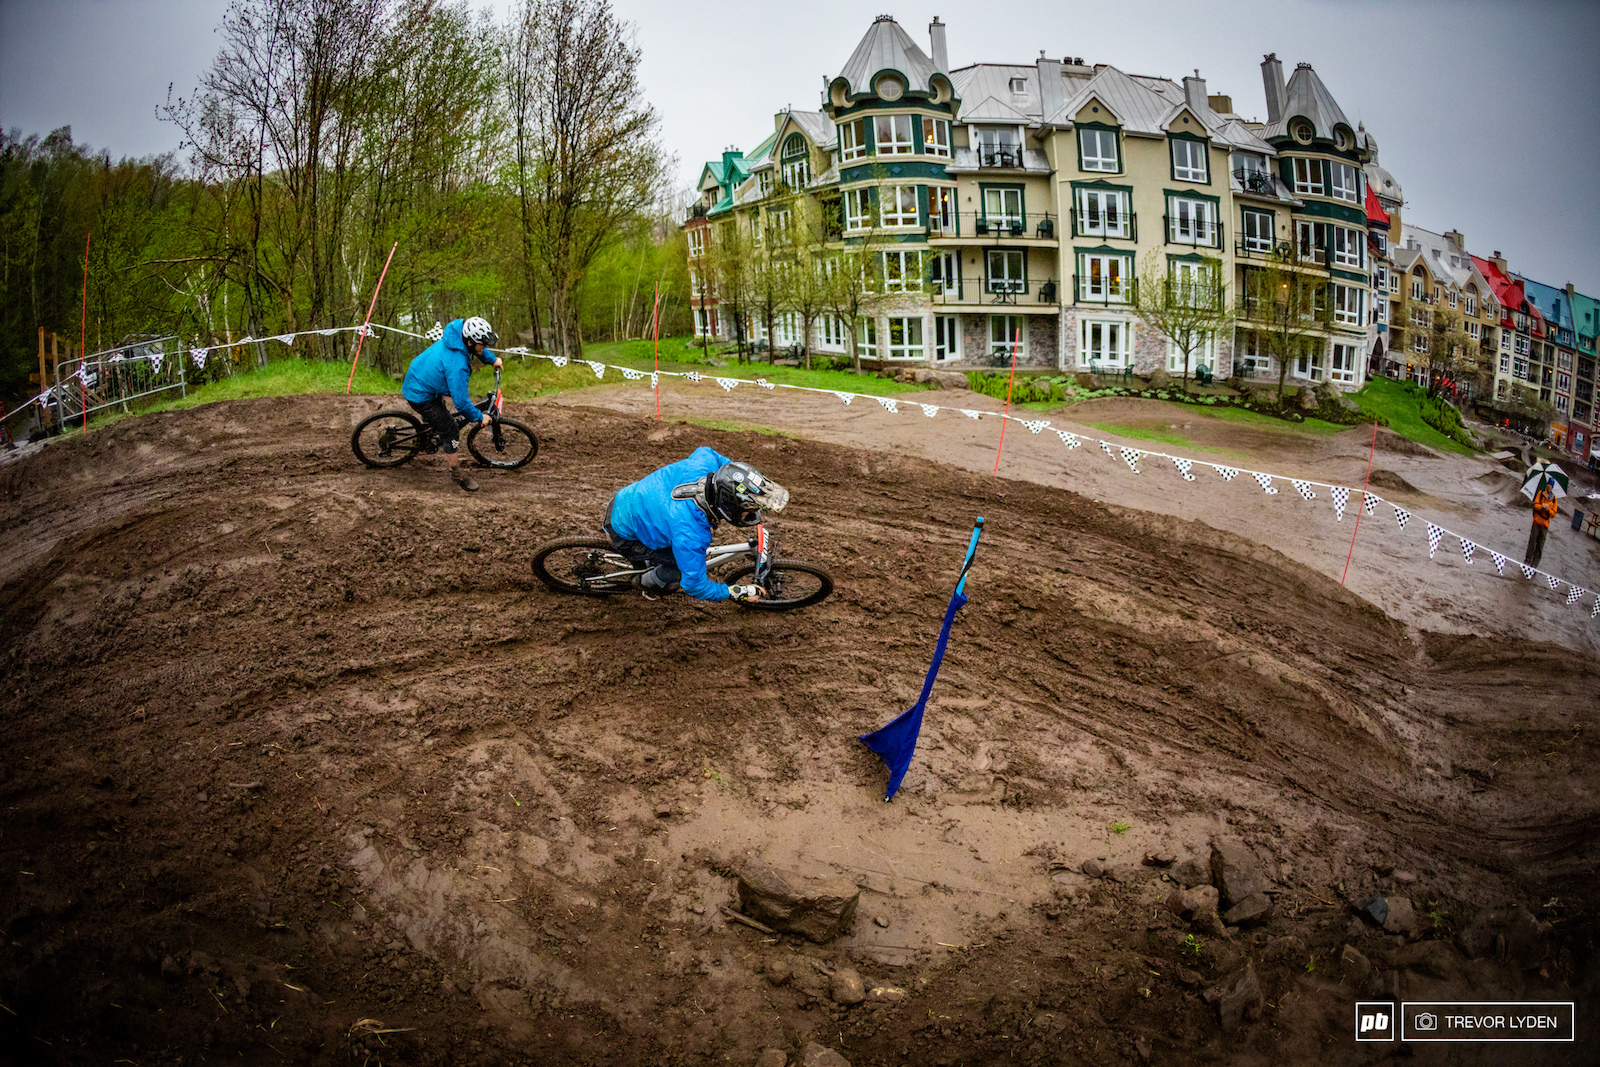 The dual slalom event was a crown favorite at the Crossroads festival.